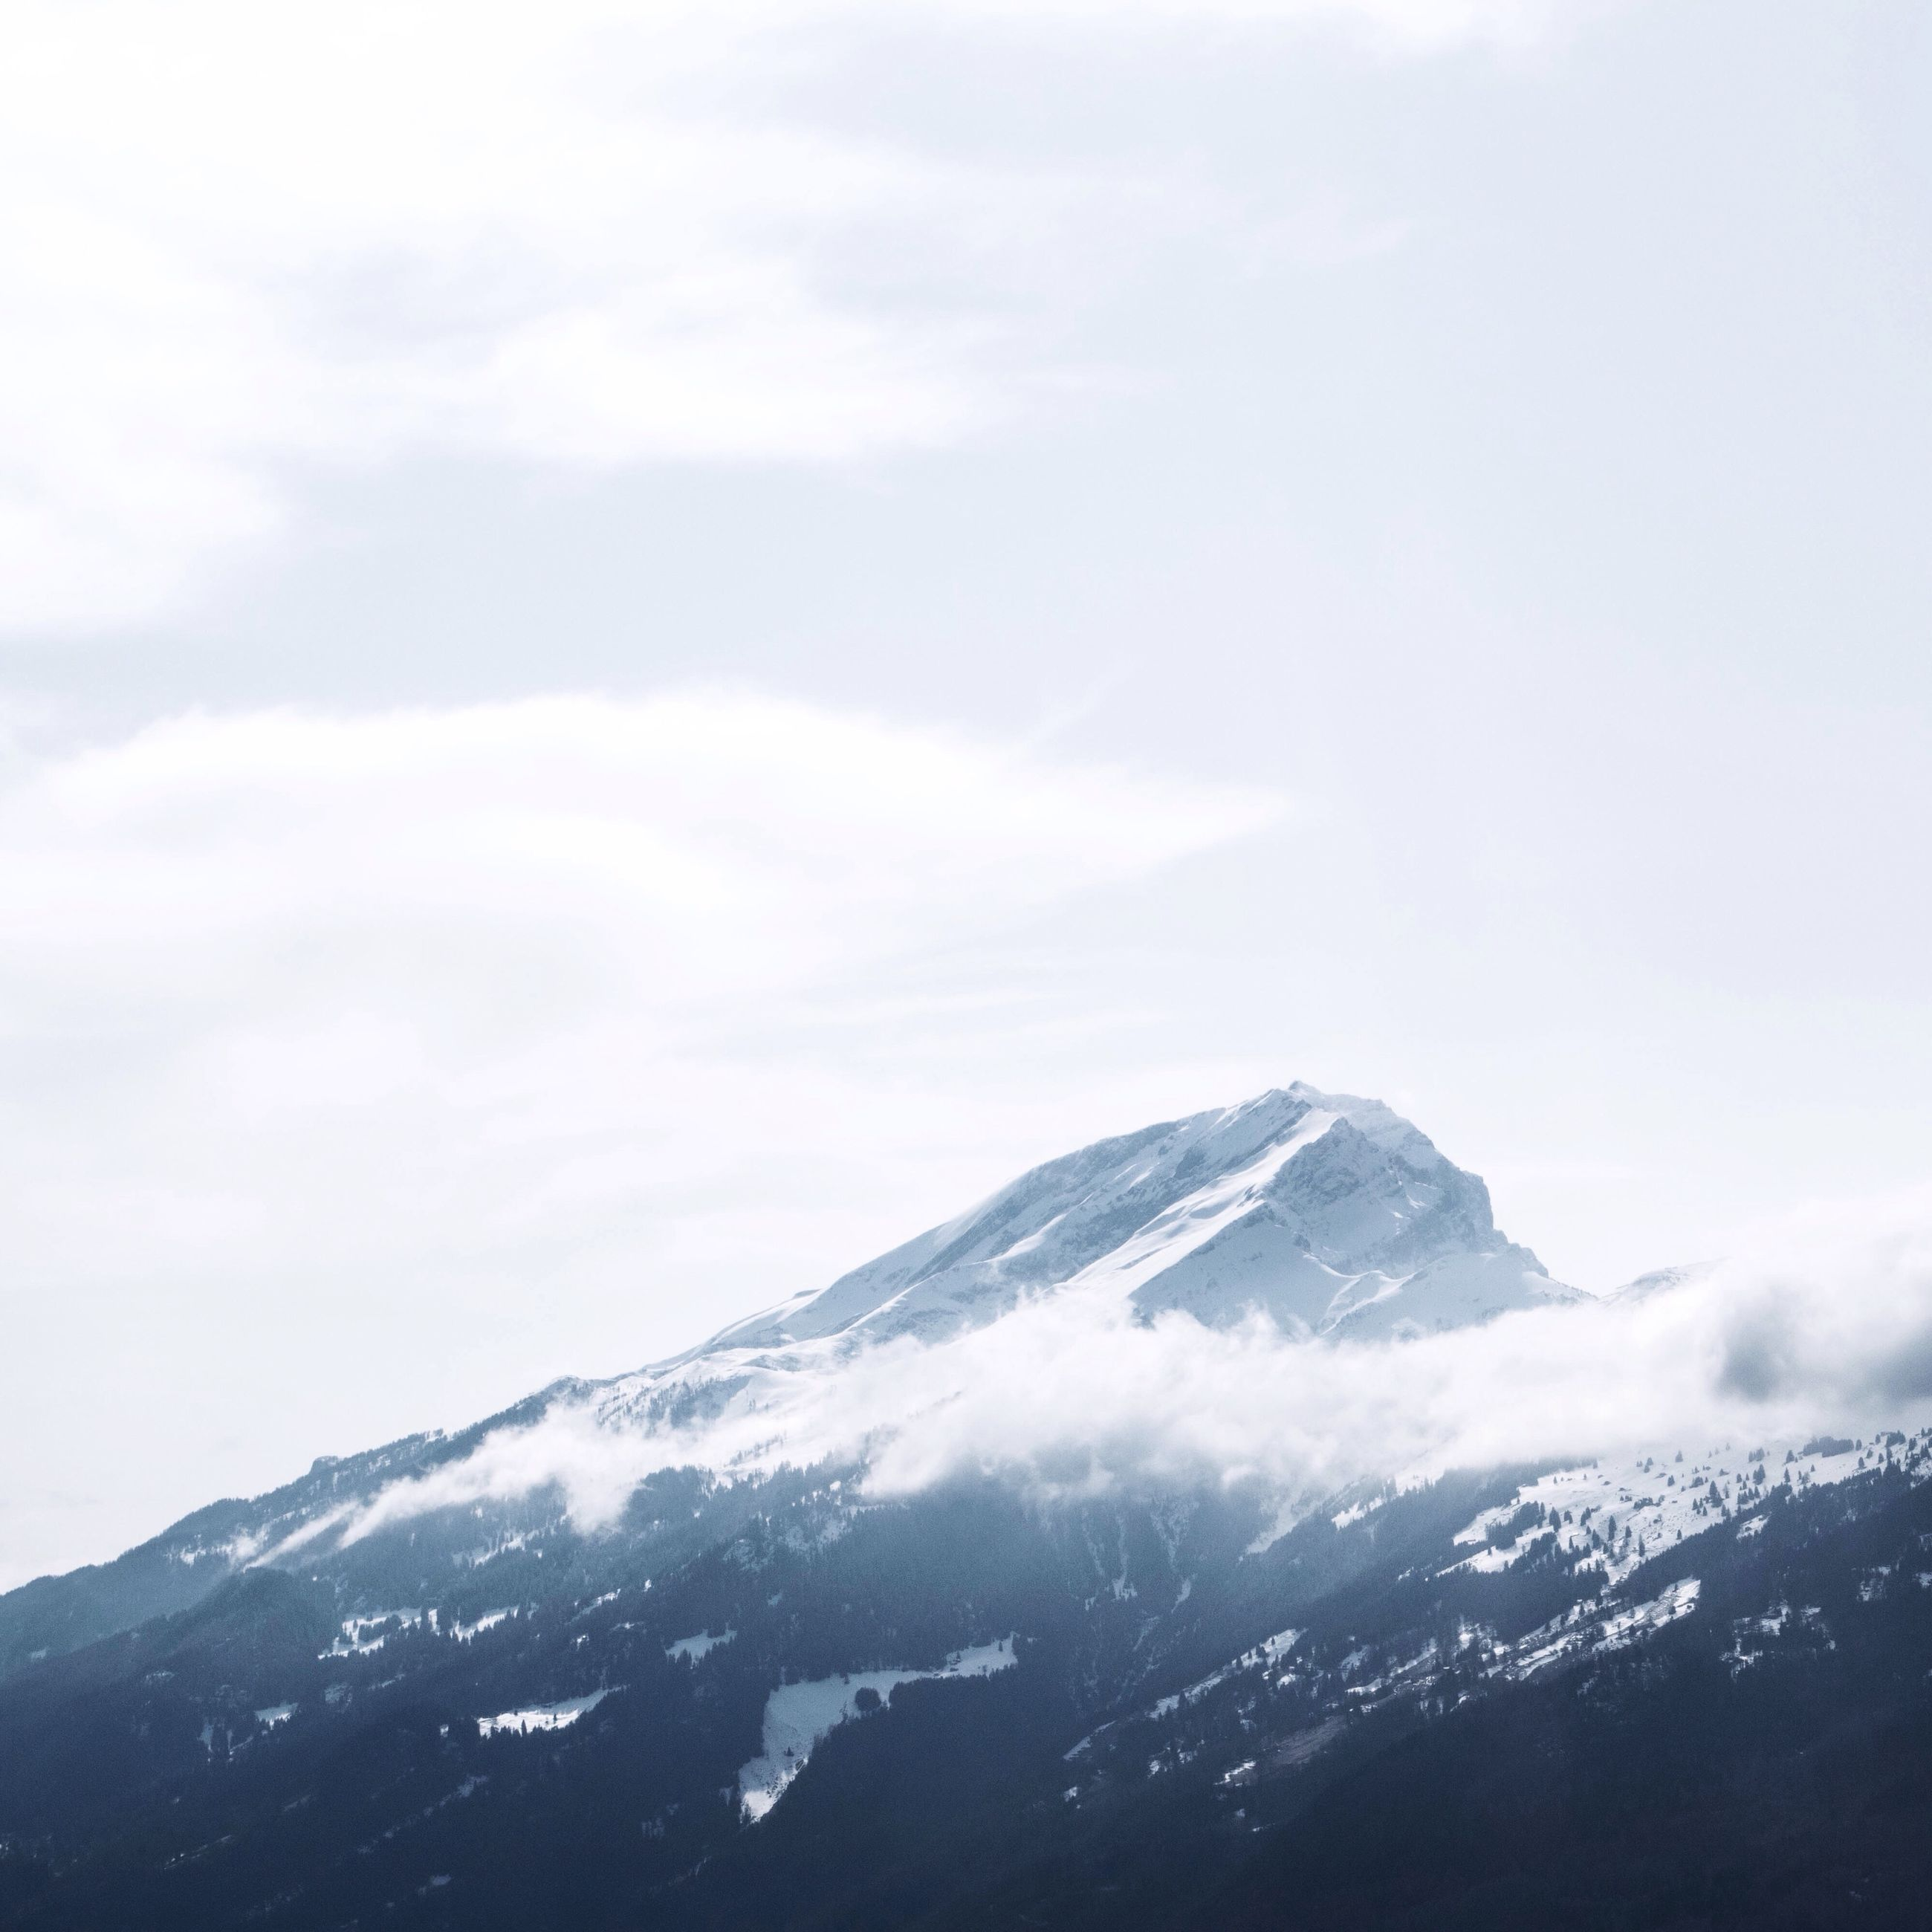 snow, winter, cold temperature, mountain, season, weather, scenics, mountain range, tranquil scene, snowcapped mountain, tranquility, beauty in nature, covering, sky, nature, landscape, white color, cloud - sky, majestic, idyllic